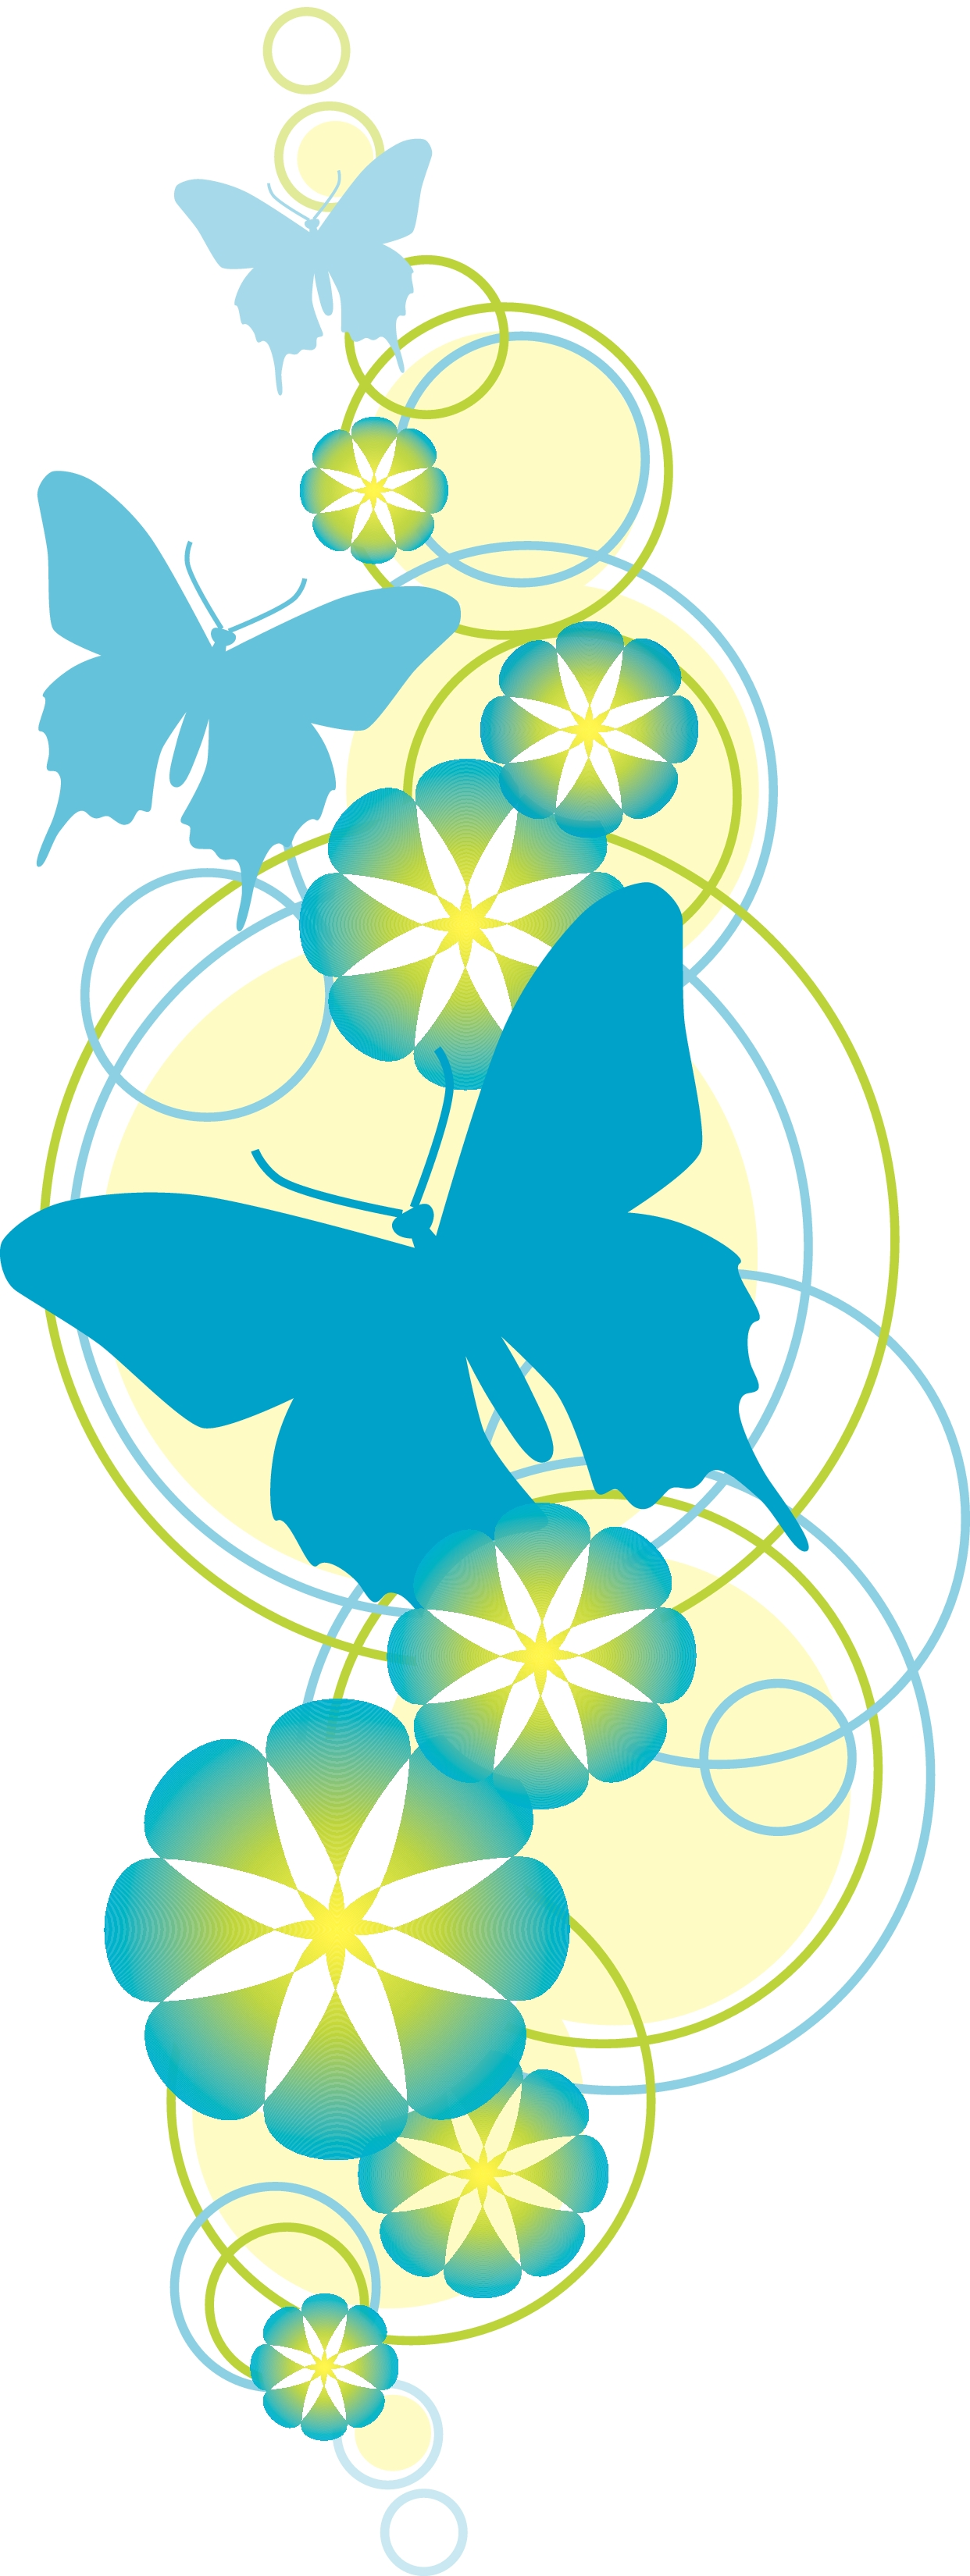 Flower And Butterfly Christian Clipart   Kensington Presbyterian